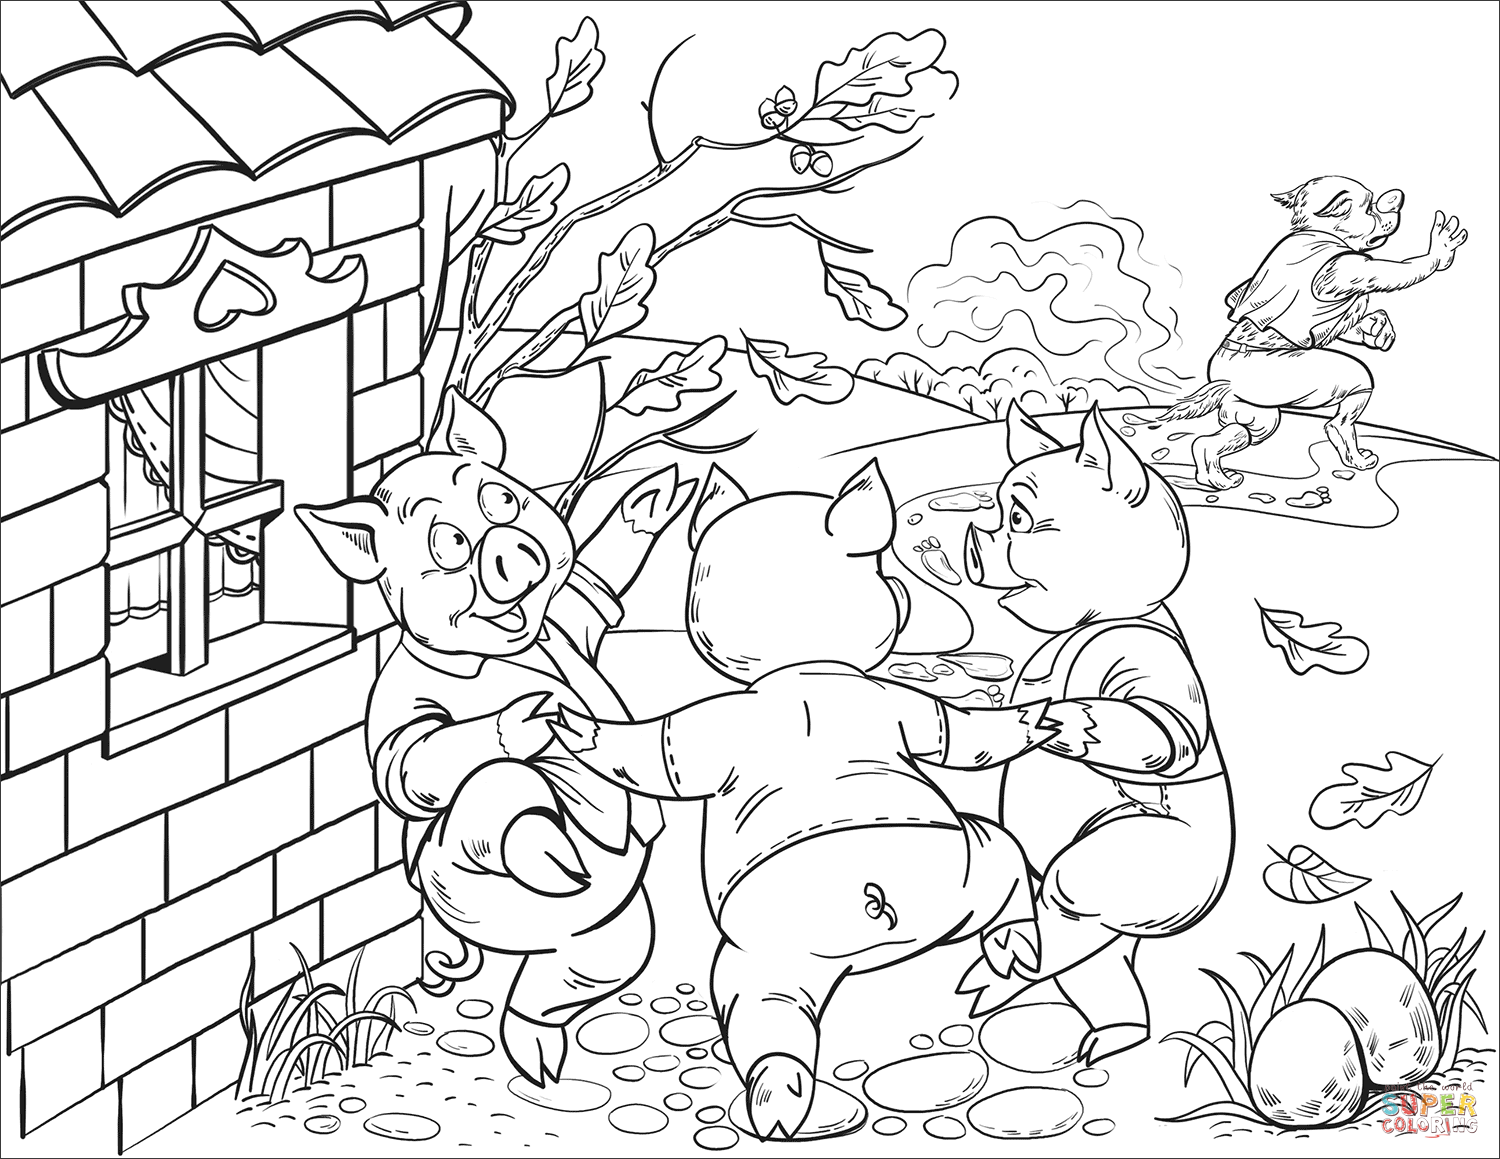 Happy Three Little Pigs Dancing Coloring Page